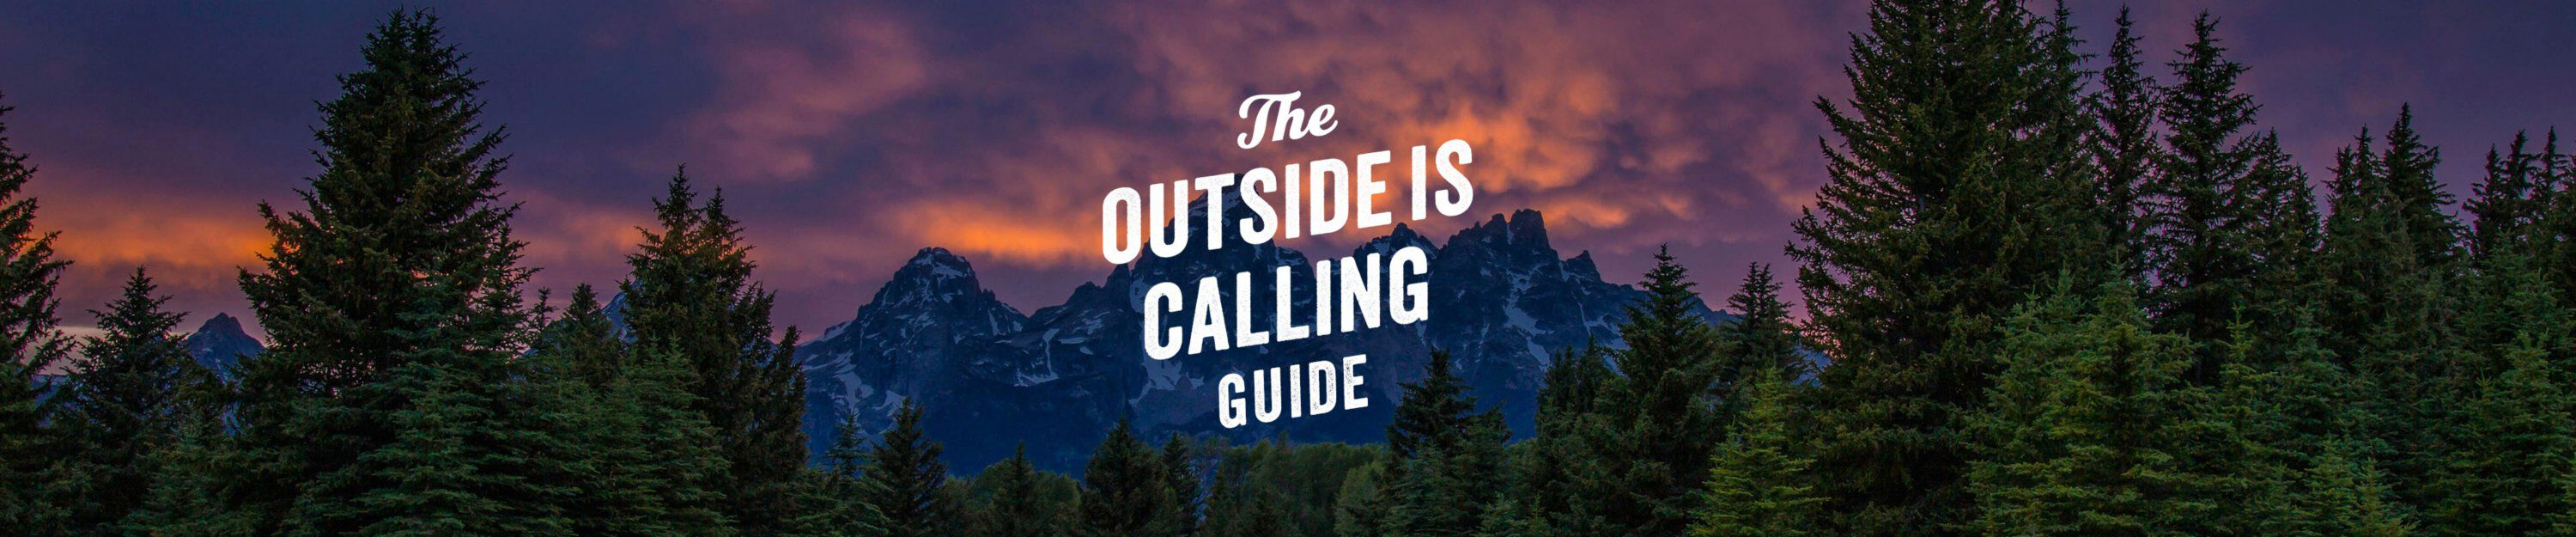 the outside is calling guide